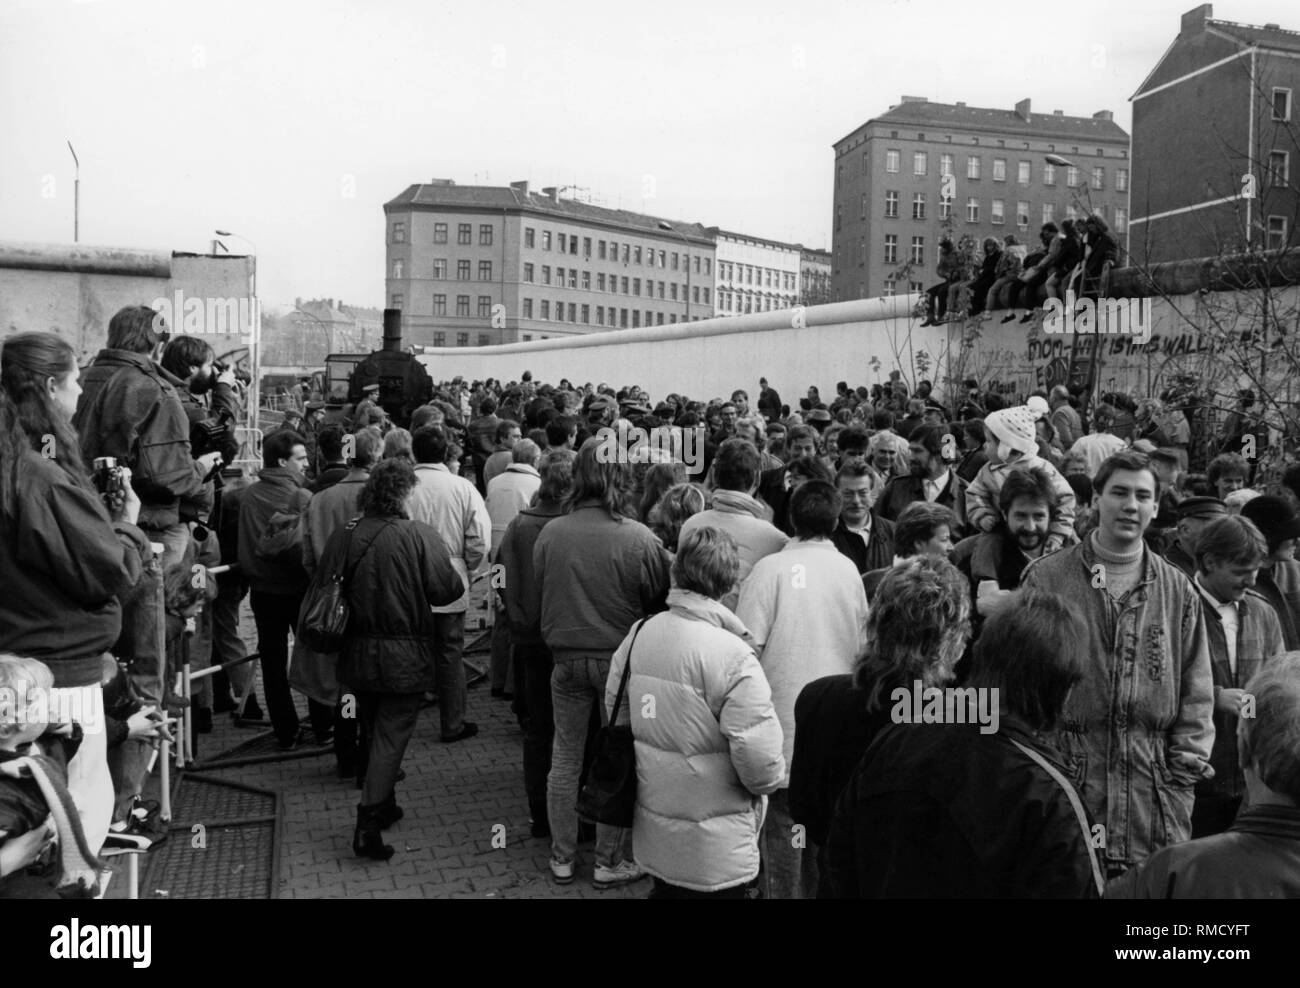 After the fall of the Berlin Wall, numerous East Berliners visit West Berlin, where they are received. Stock Photo